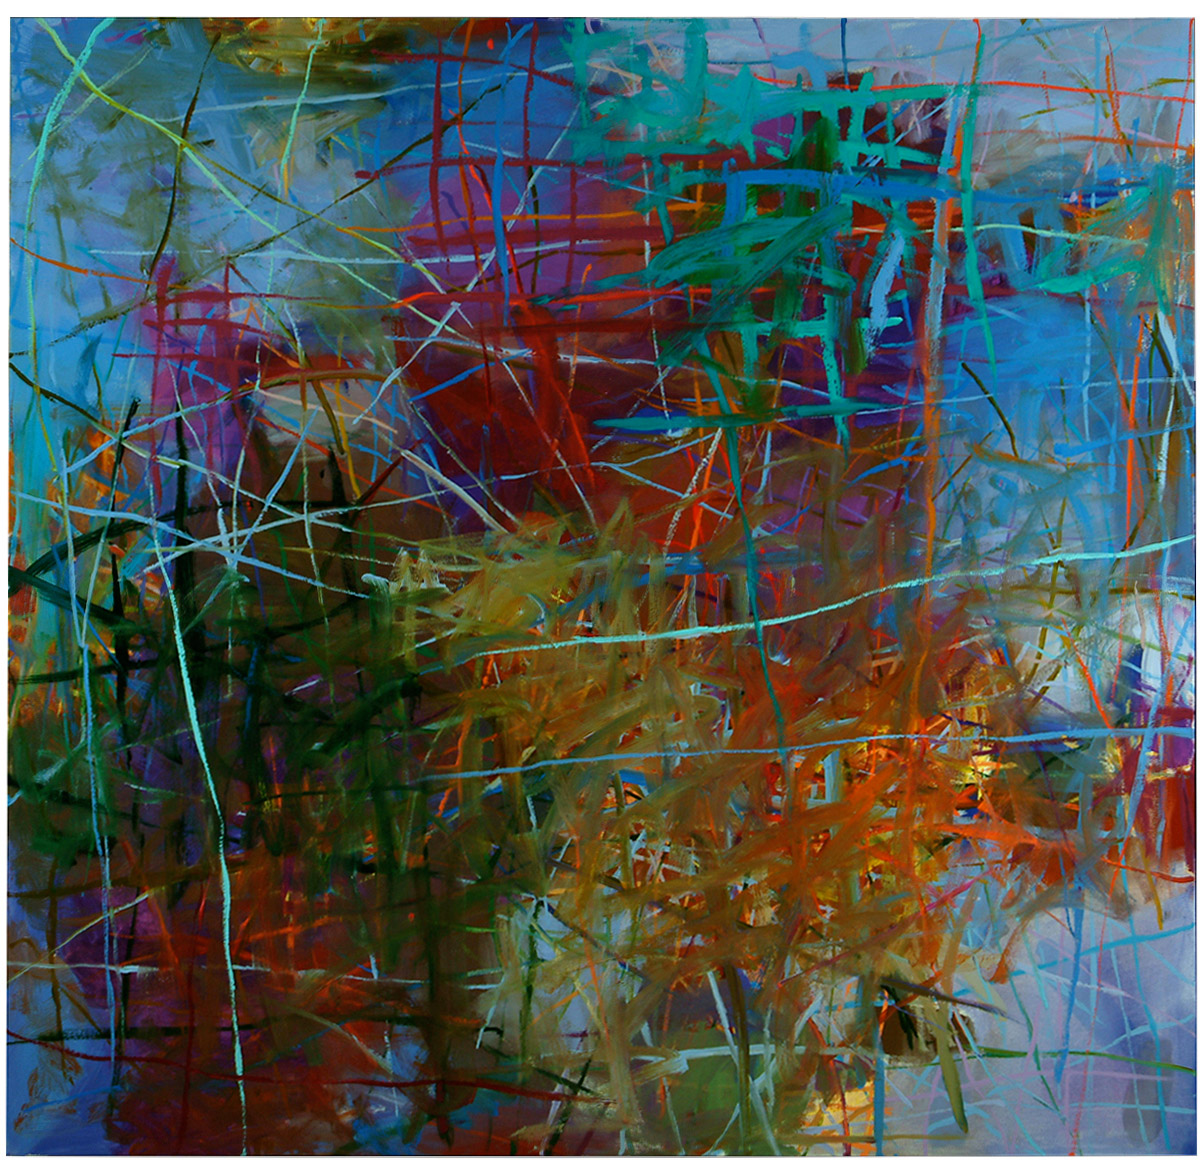 Twilight   50 × 52 inches 127 × 132 cm Oil on canvas 2005